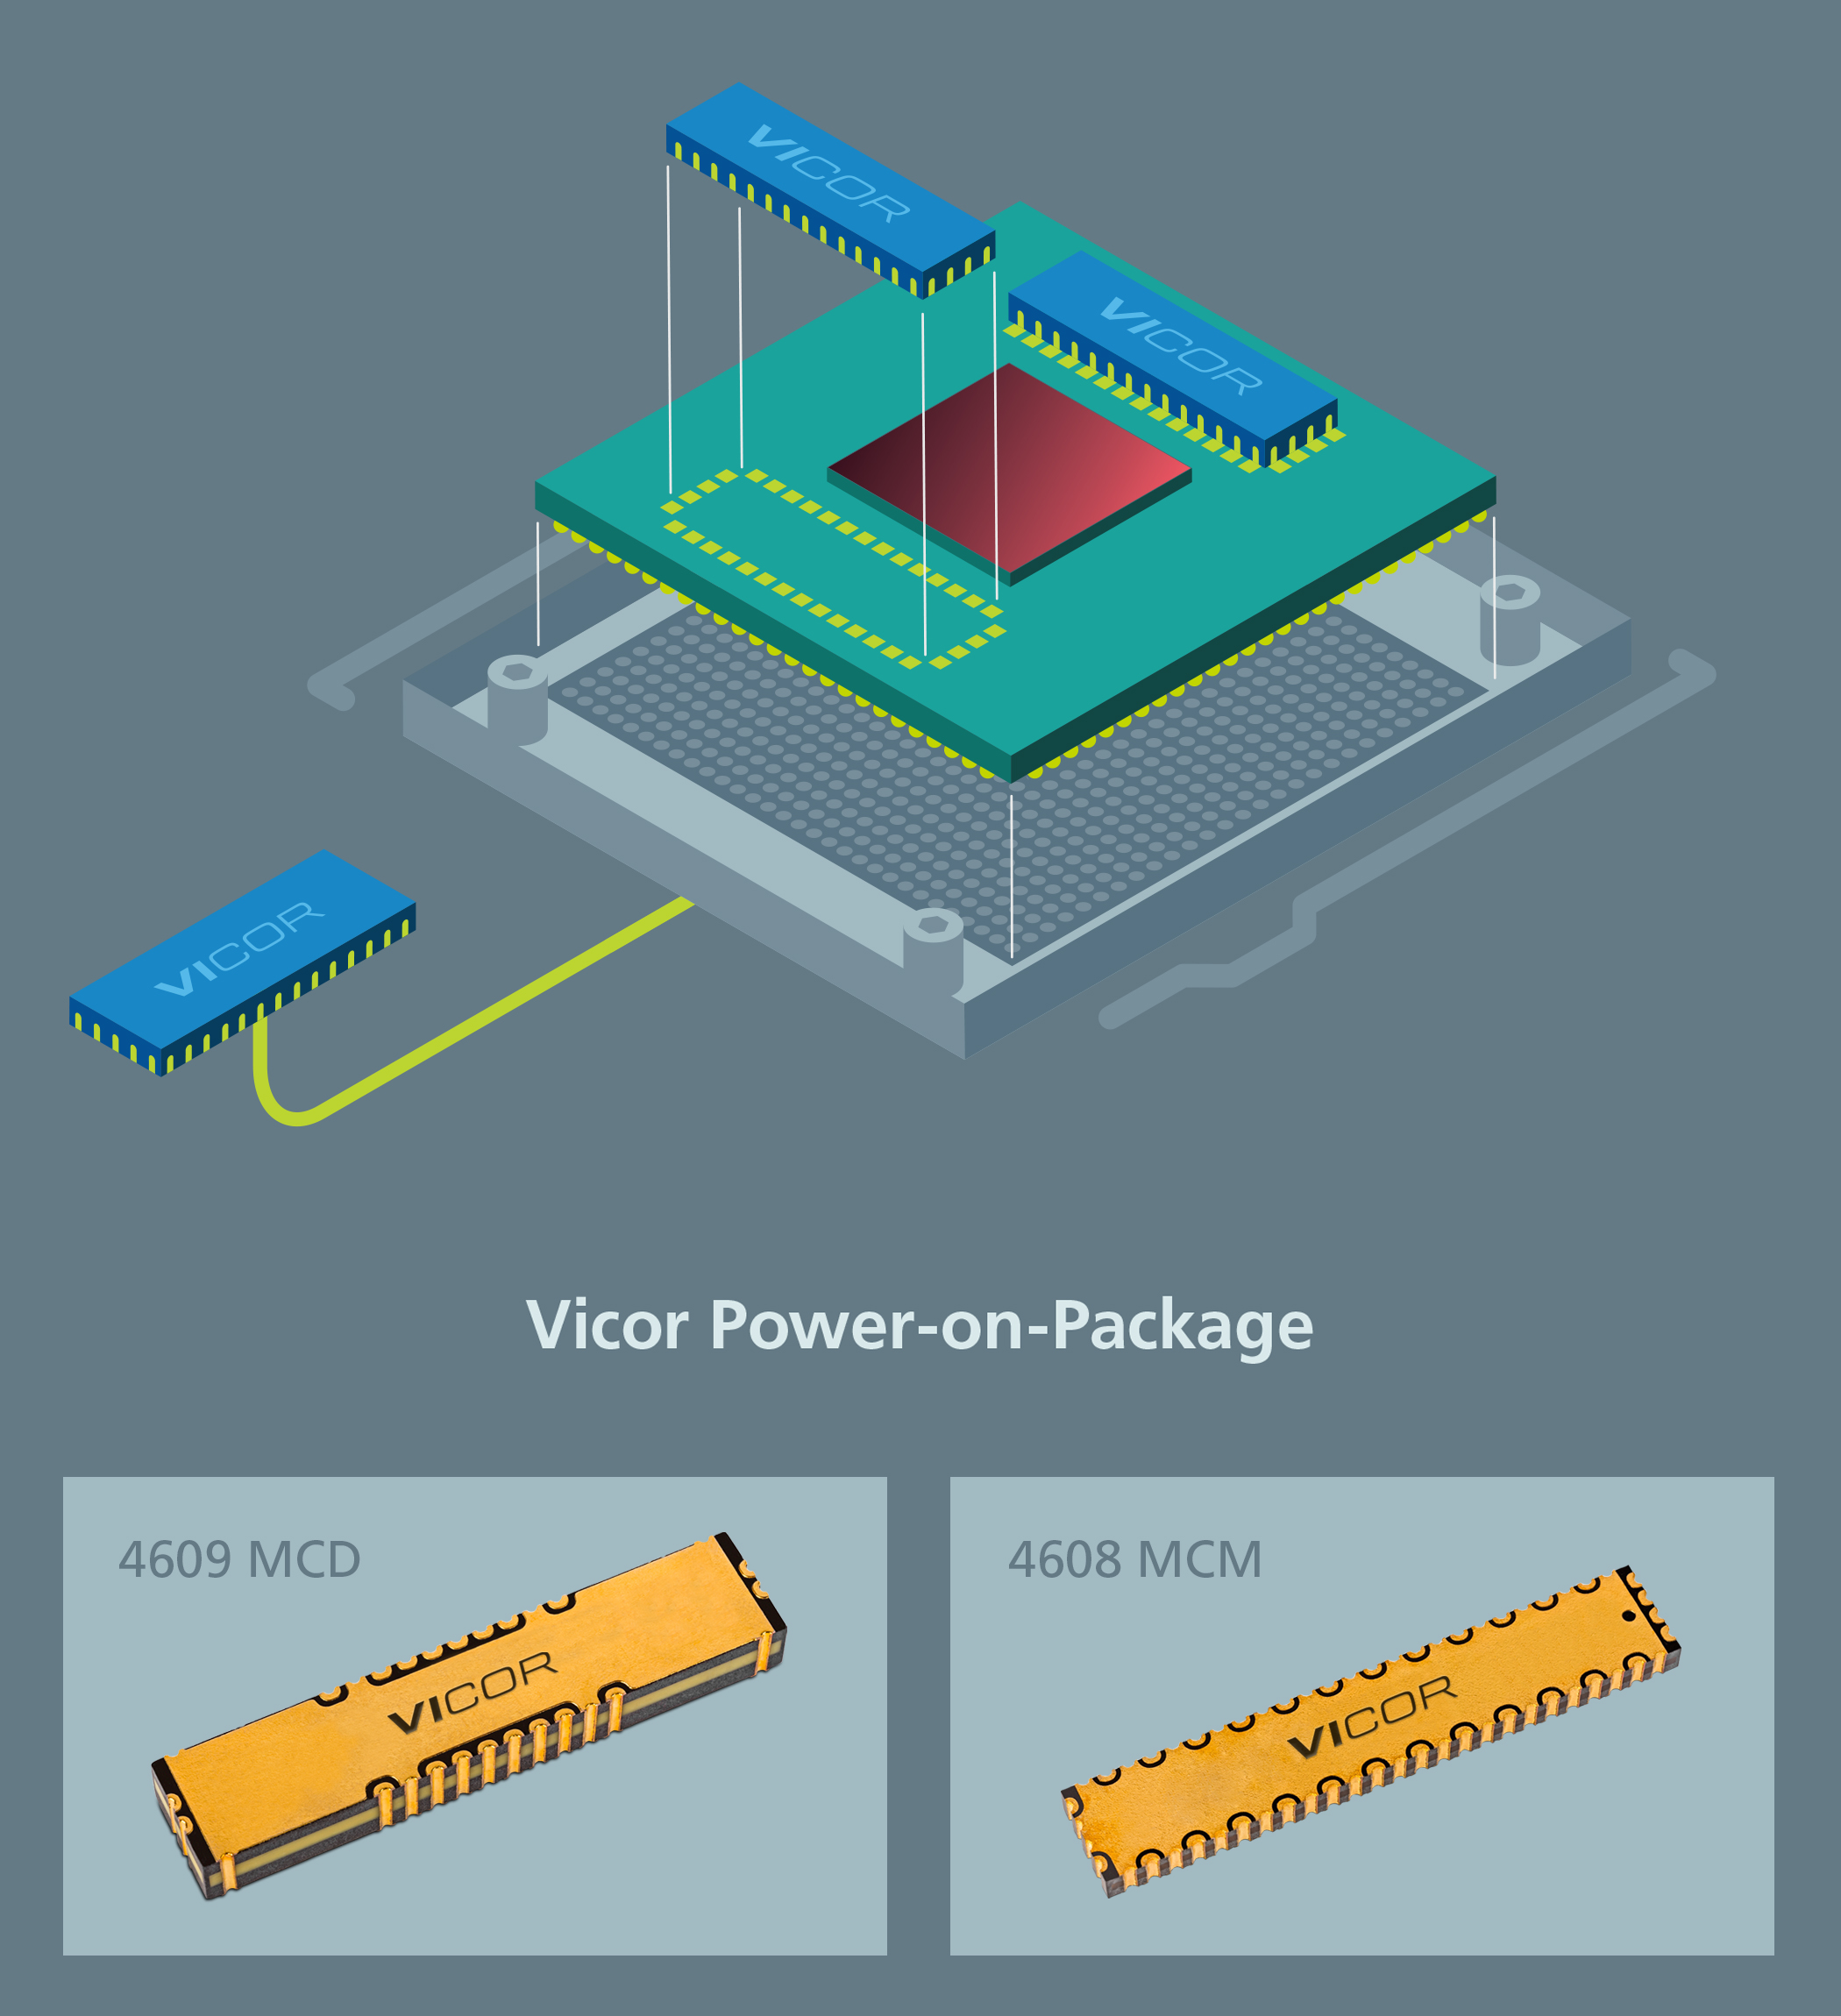 Power-on-Package Solution Provides up to 1,000A Peak Current to Enable Higher XPU Performance